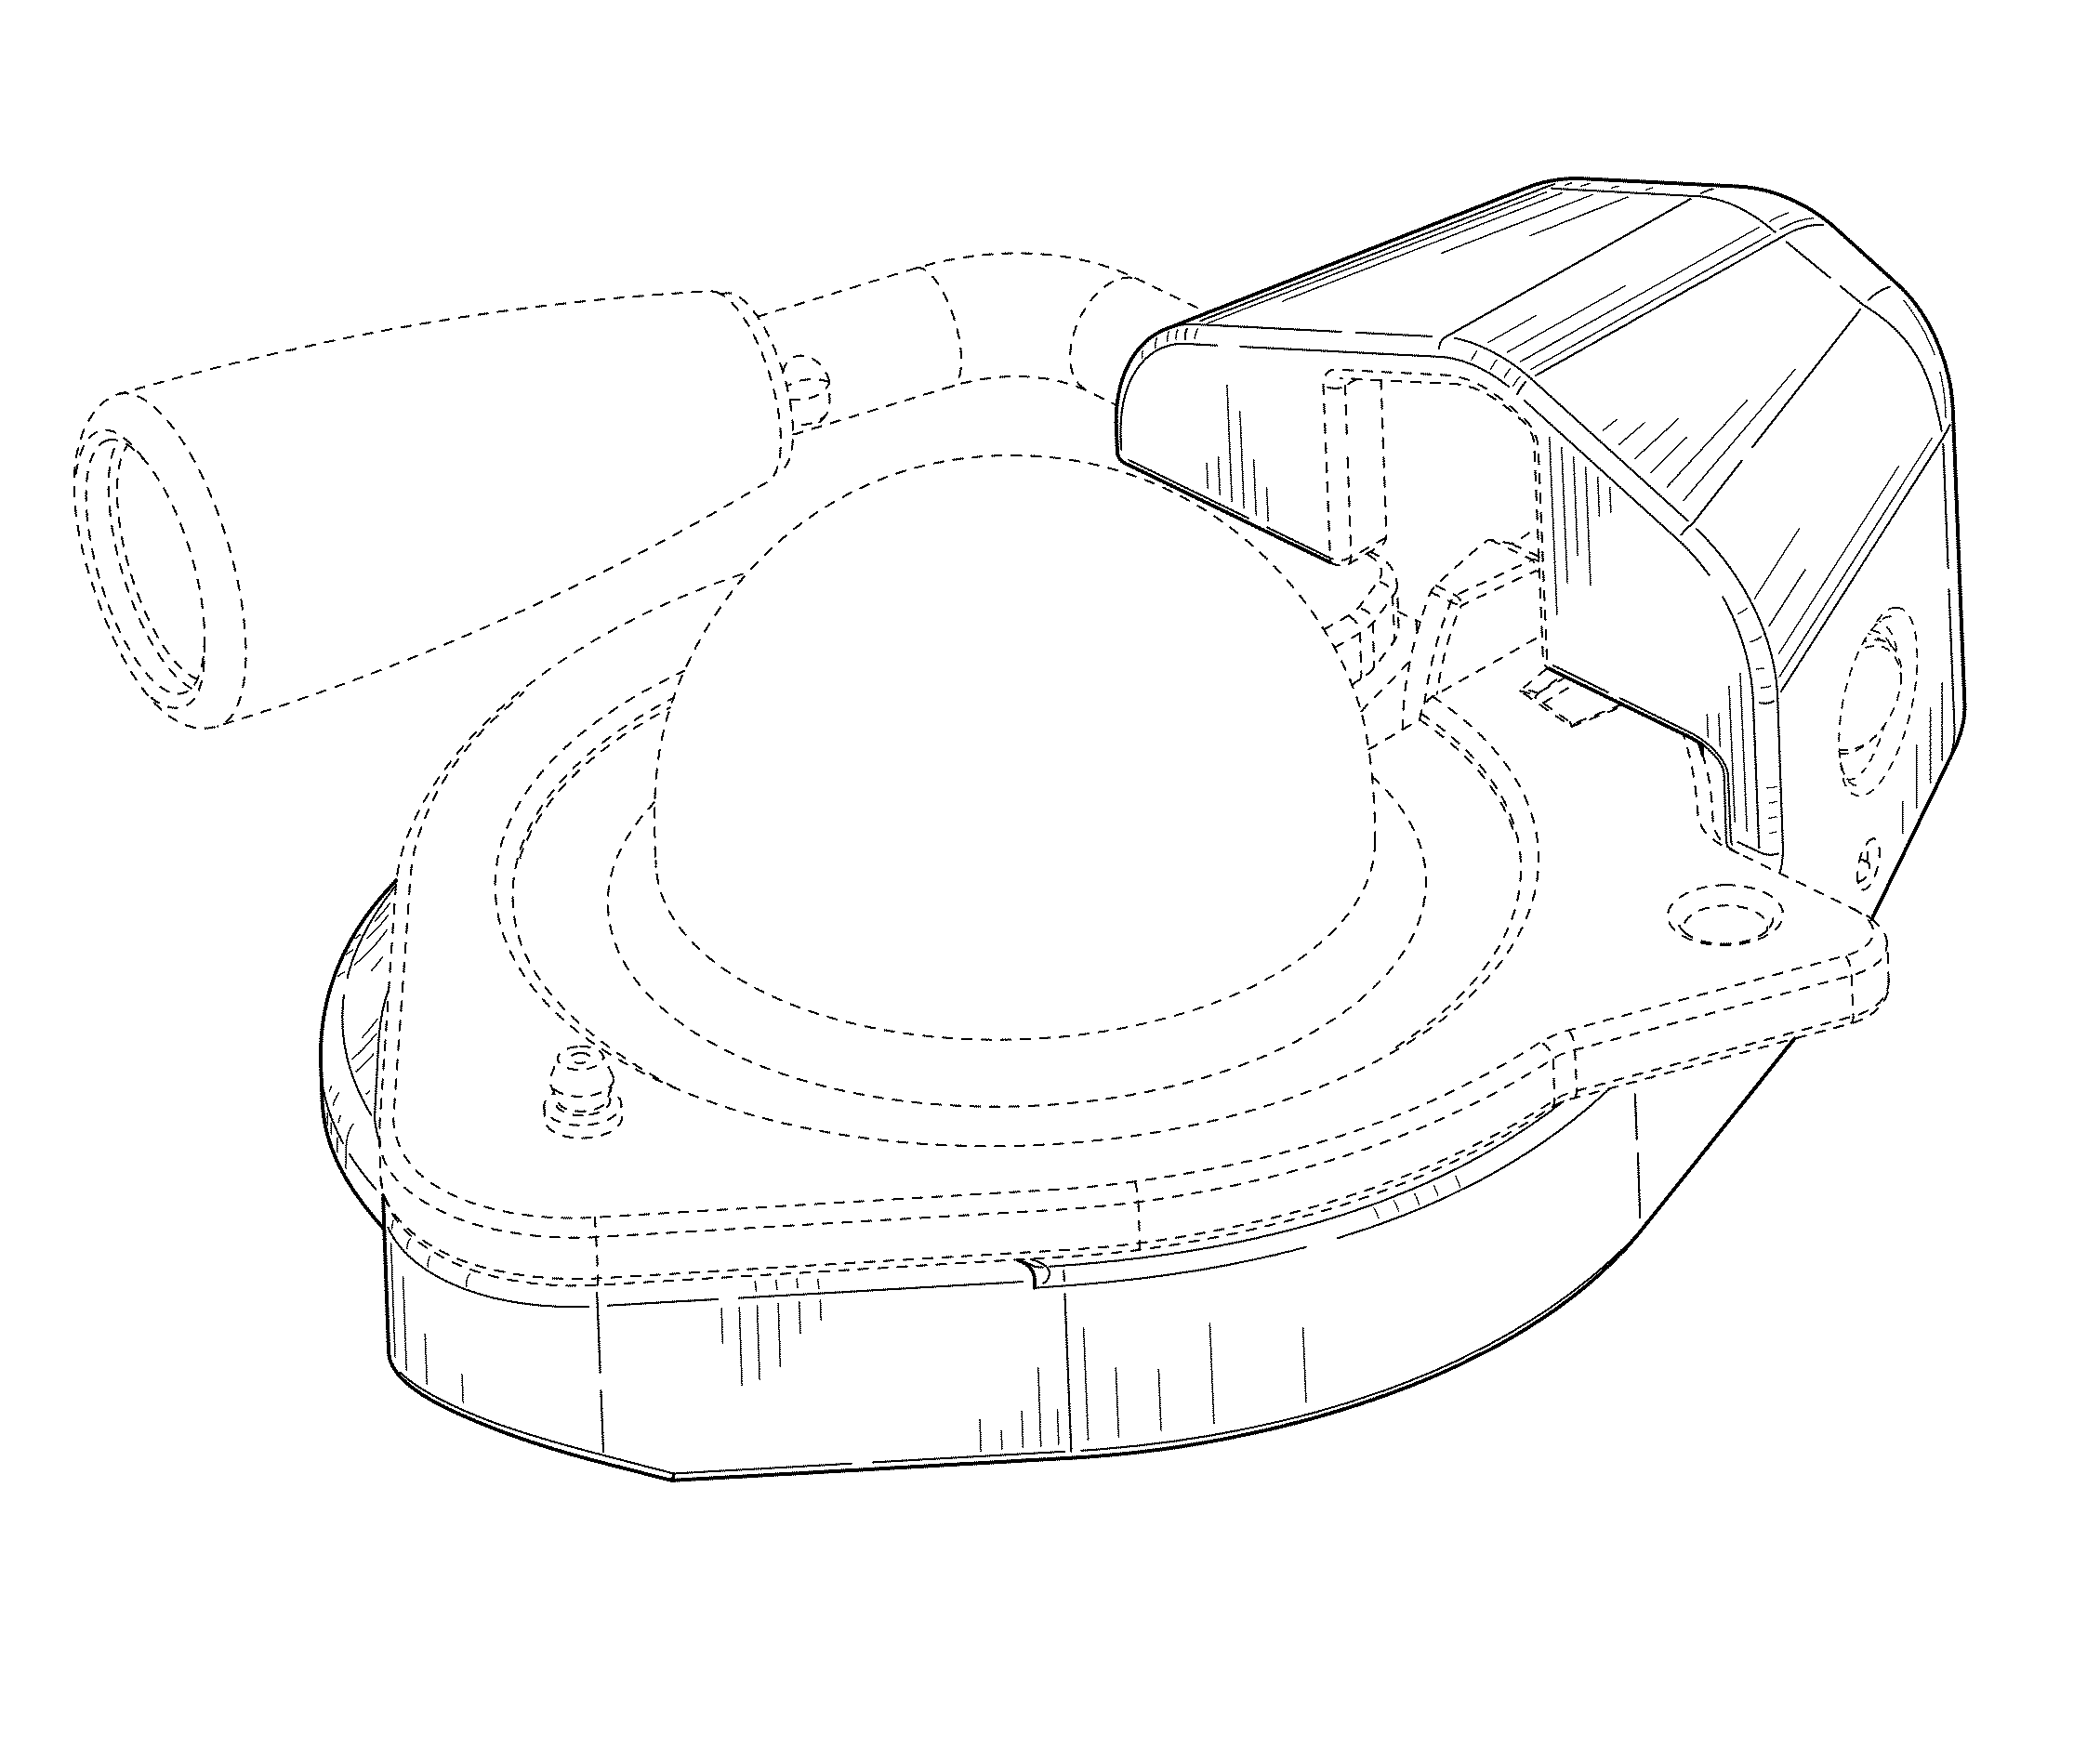 patent usd686953 gooseneck coupler head patents Trailer Coupling Lock Cover patent drawing